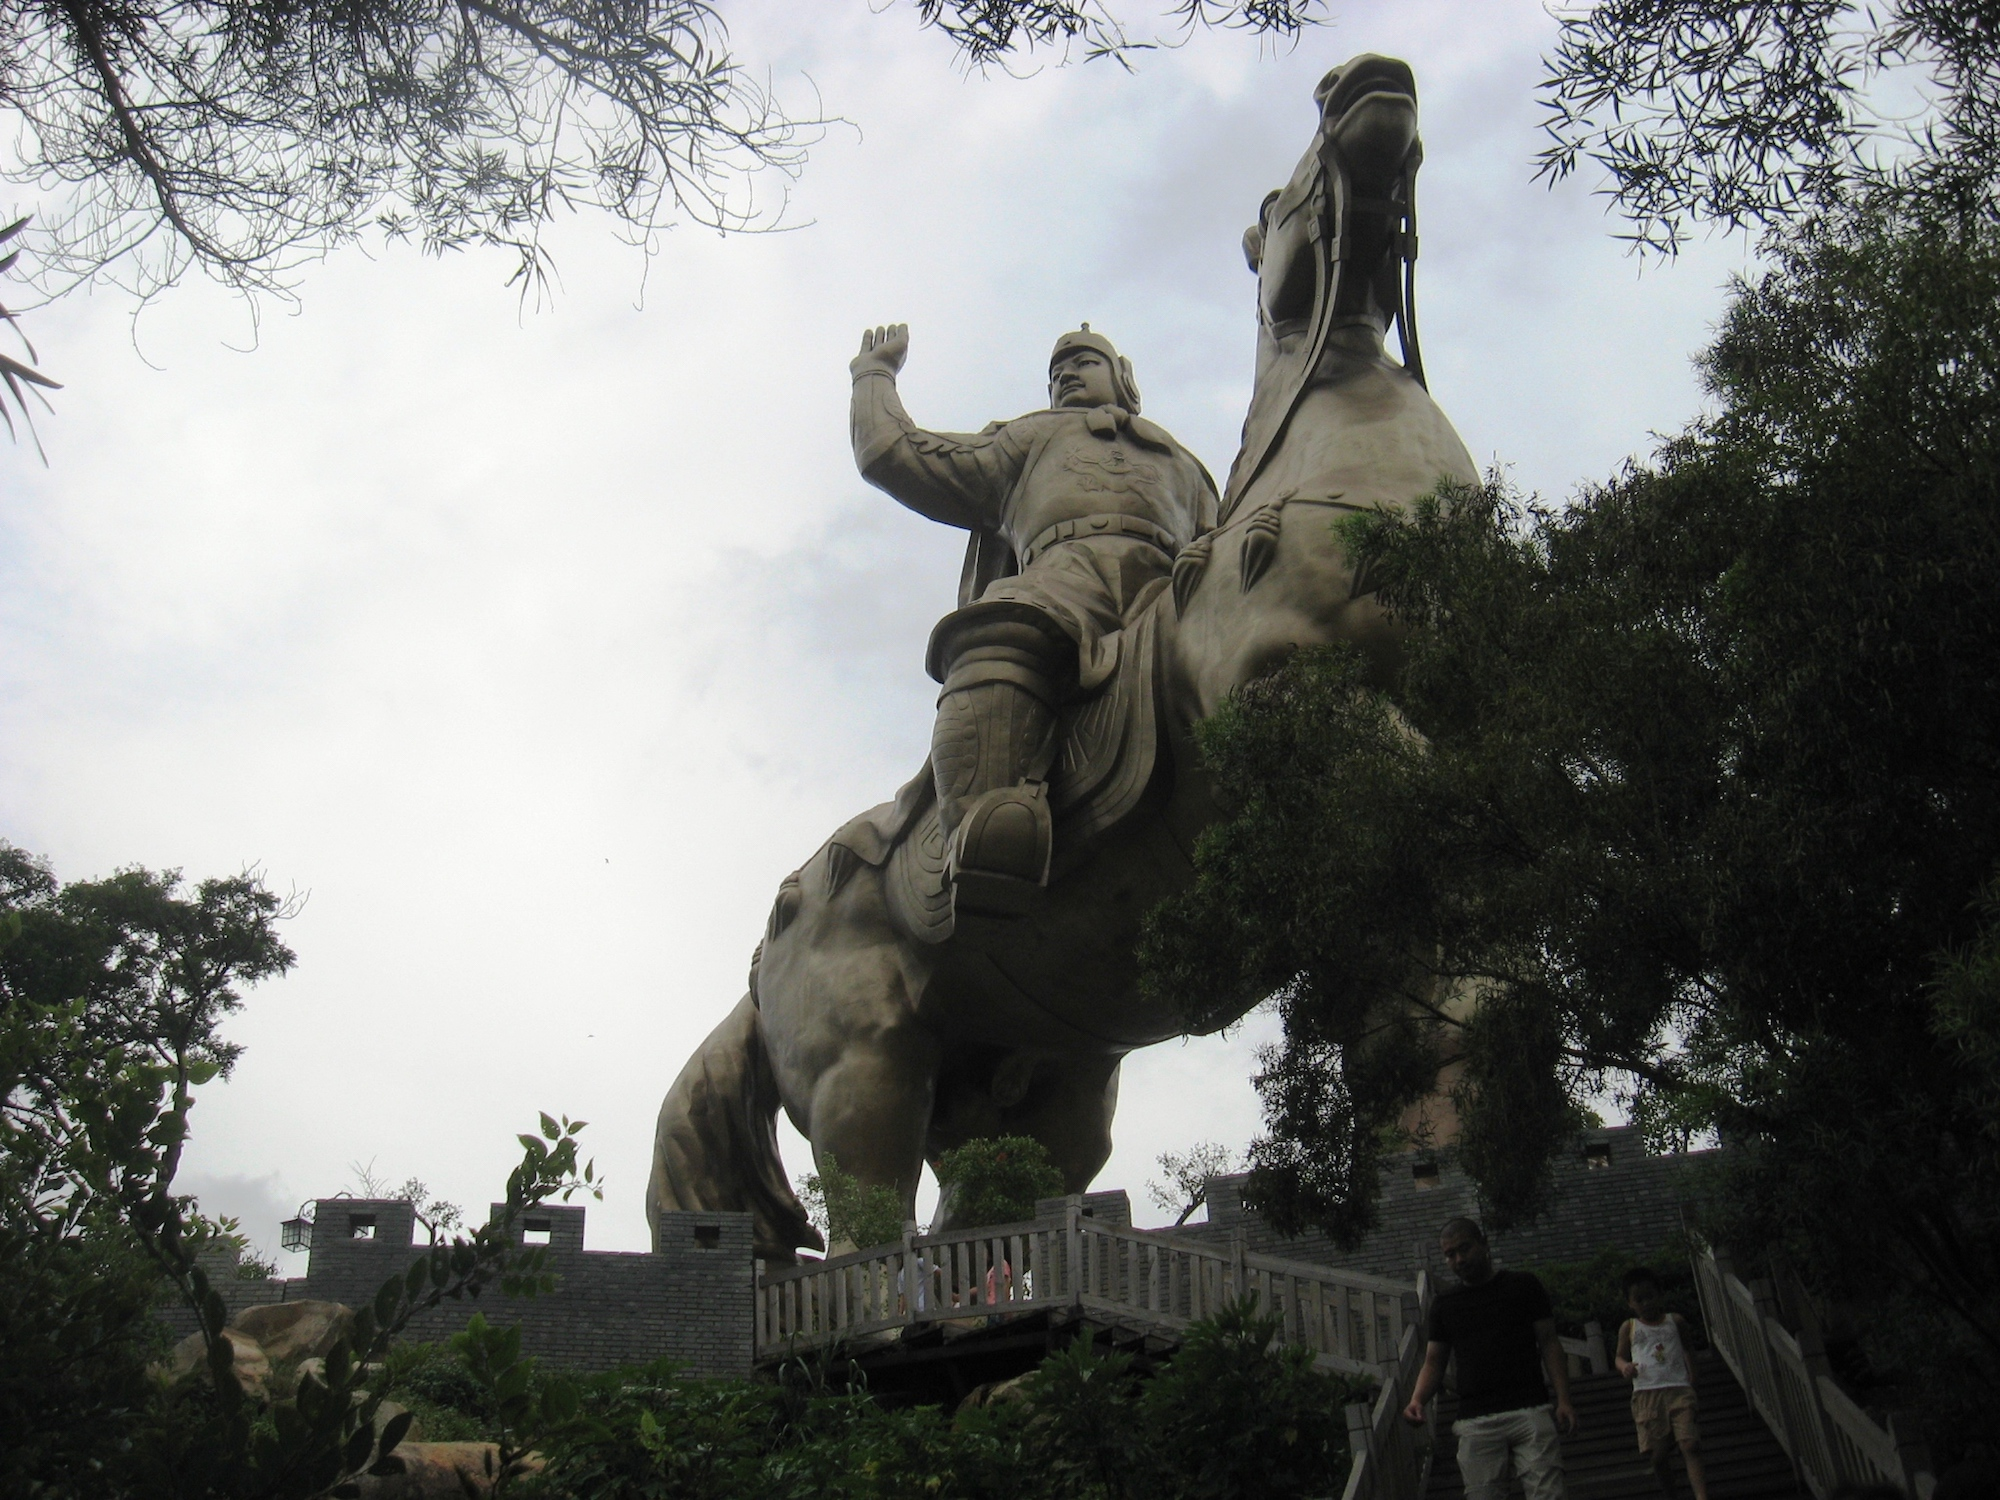 Statue of Zheng Chenggong, erected by the Fujian government in 2004